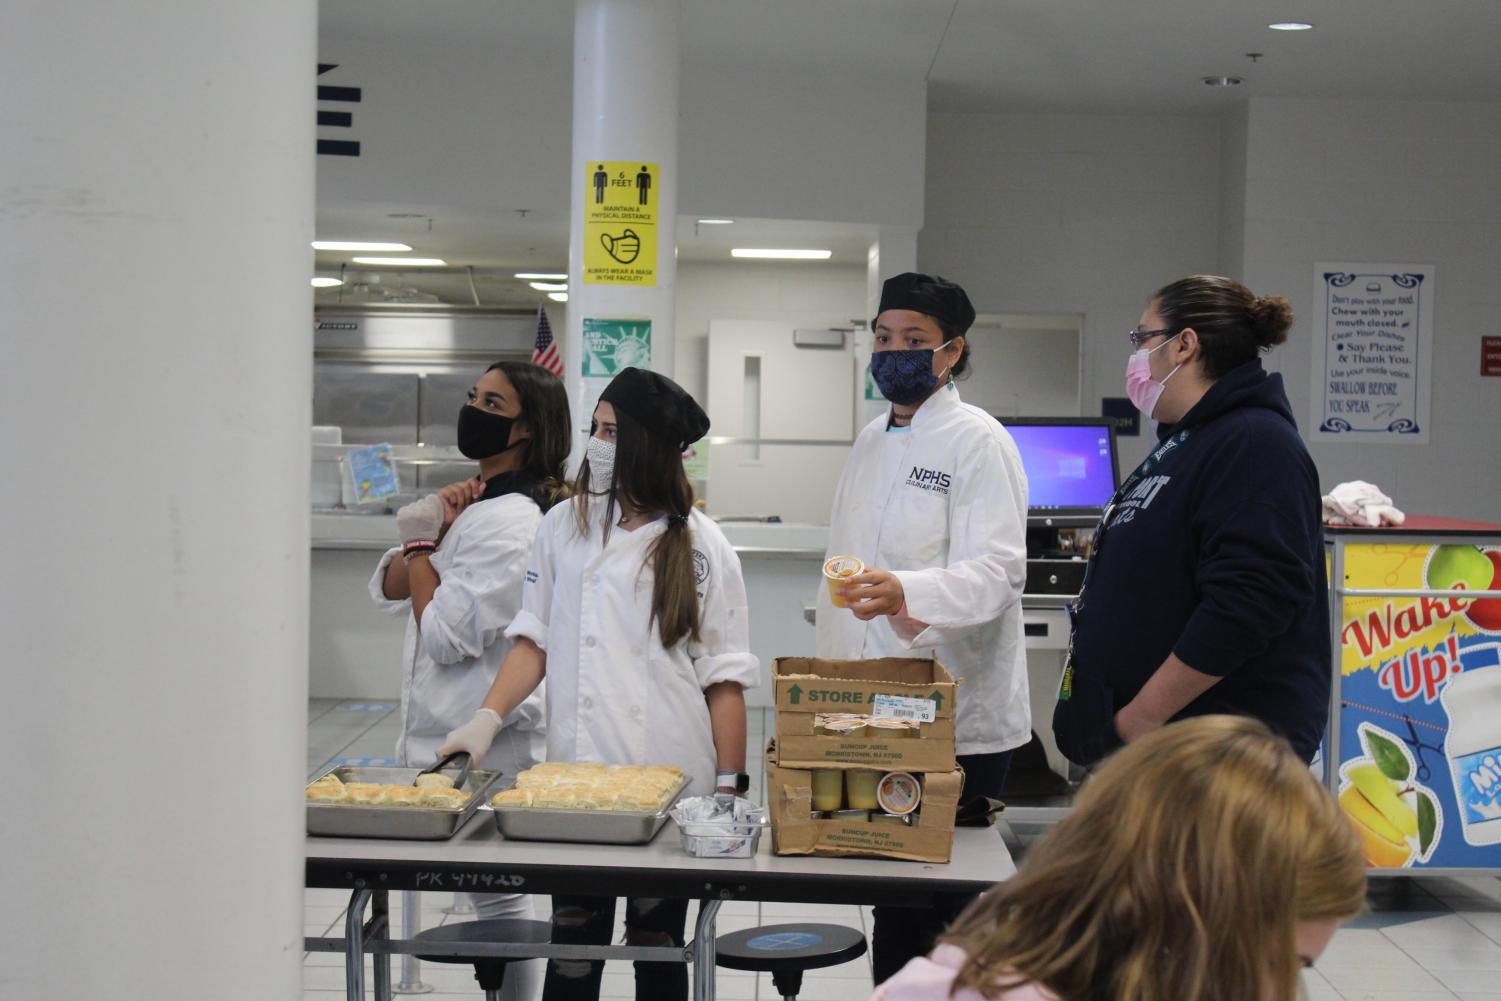 culinary students in white coats serve breakfast in the cafeteria